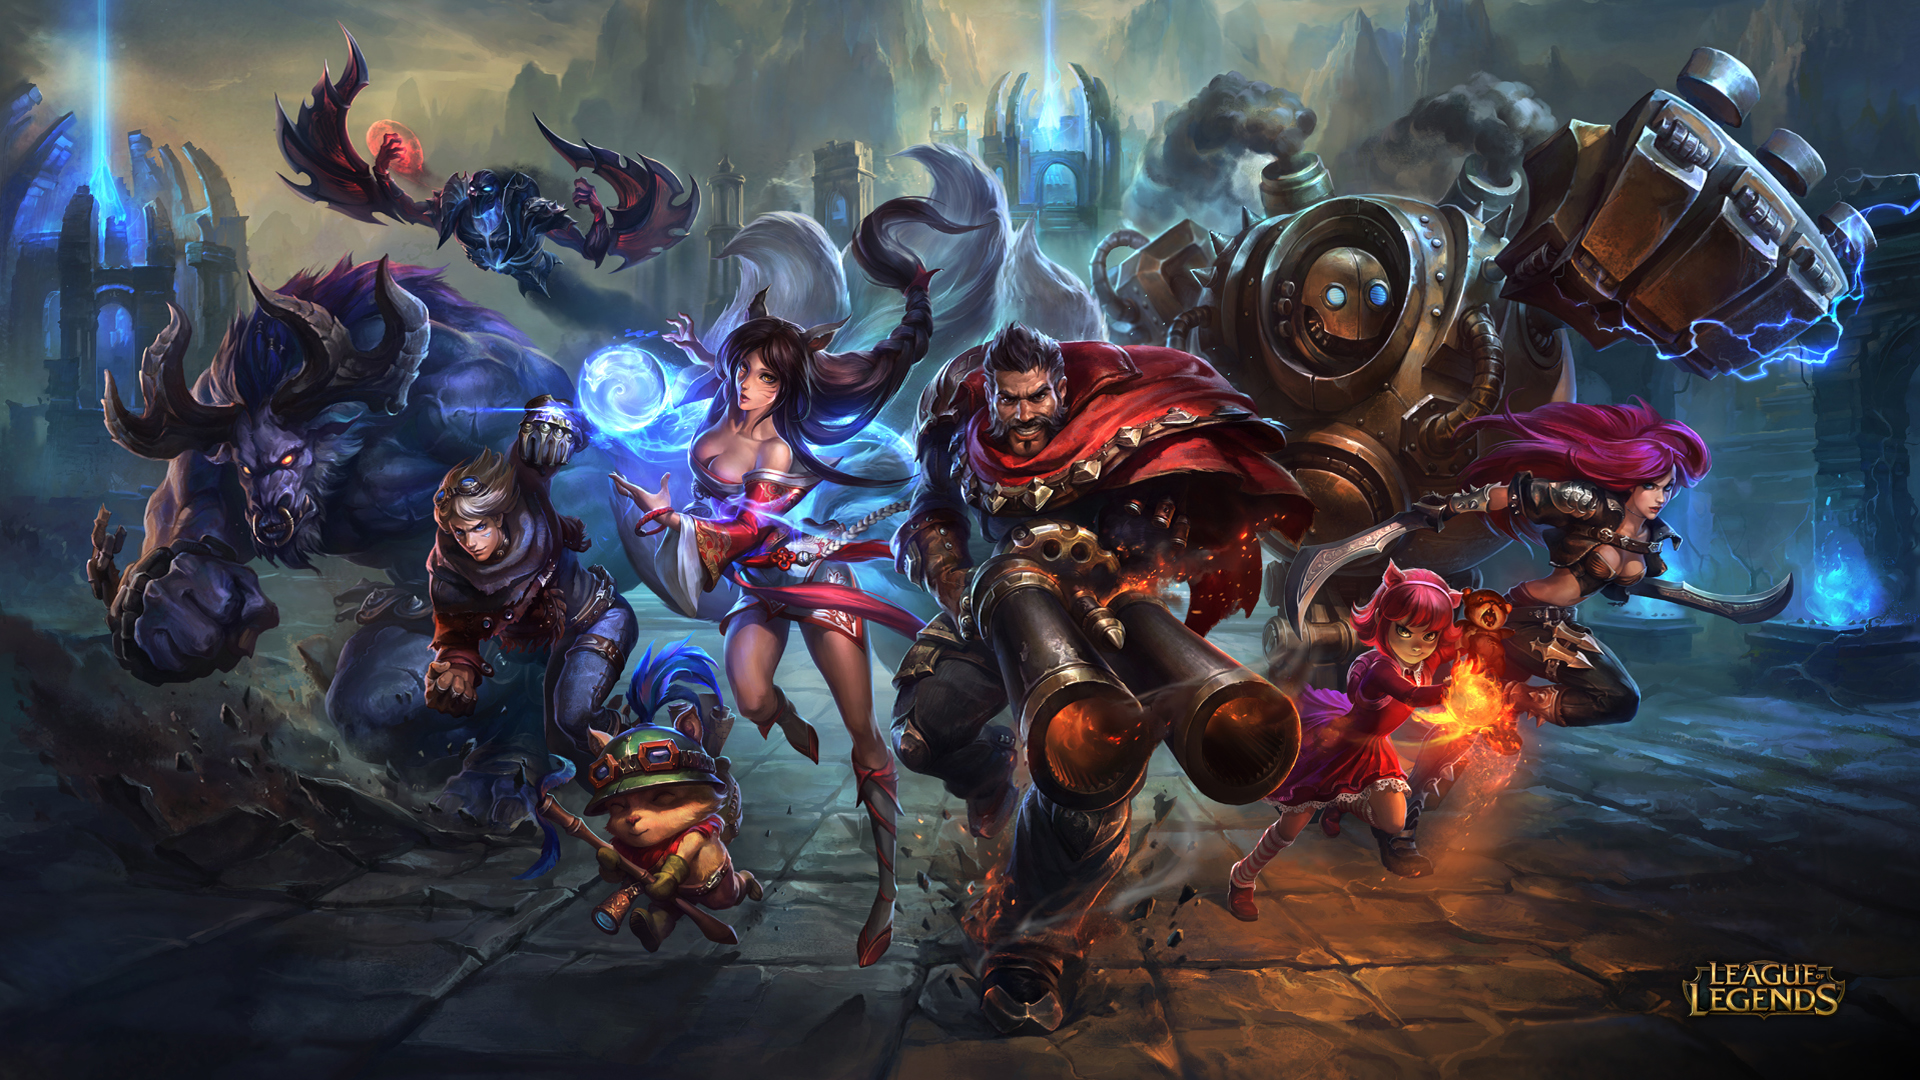 Pics photos pictures league of legends heroes wallpaper hd 1080p jpg - Gallery For League Of Legends Wallpaper Hd